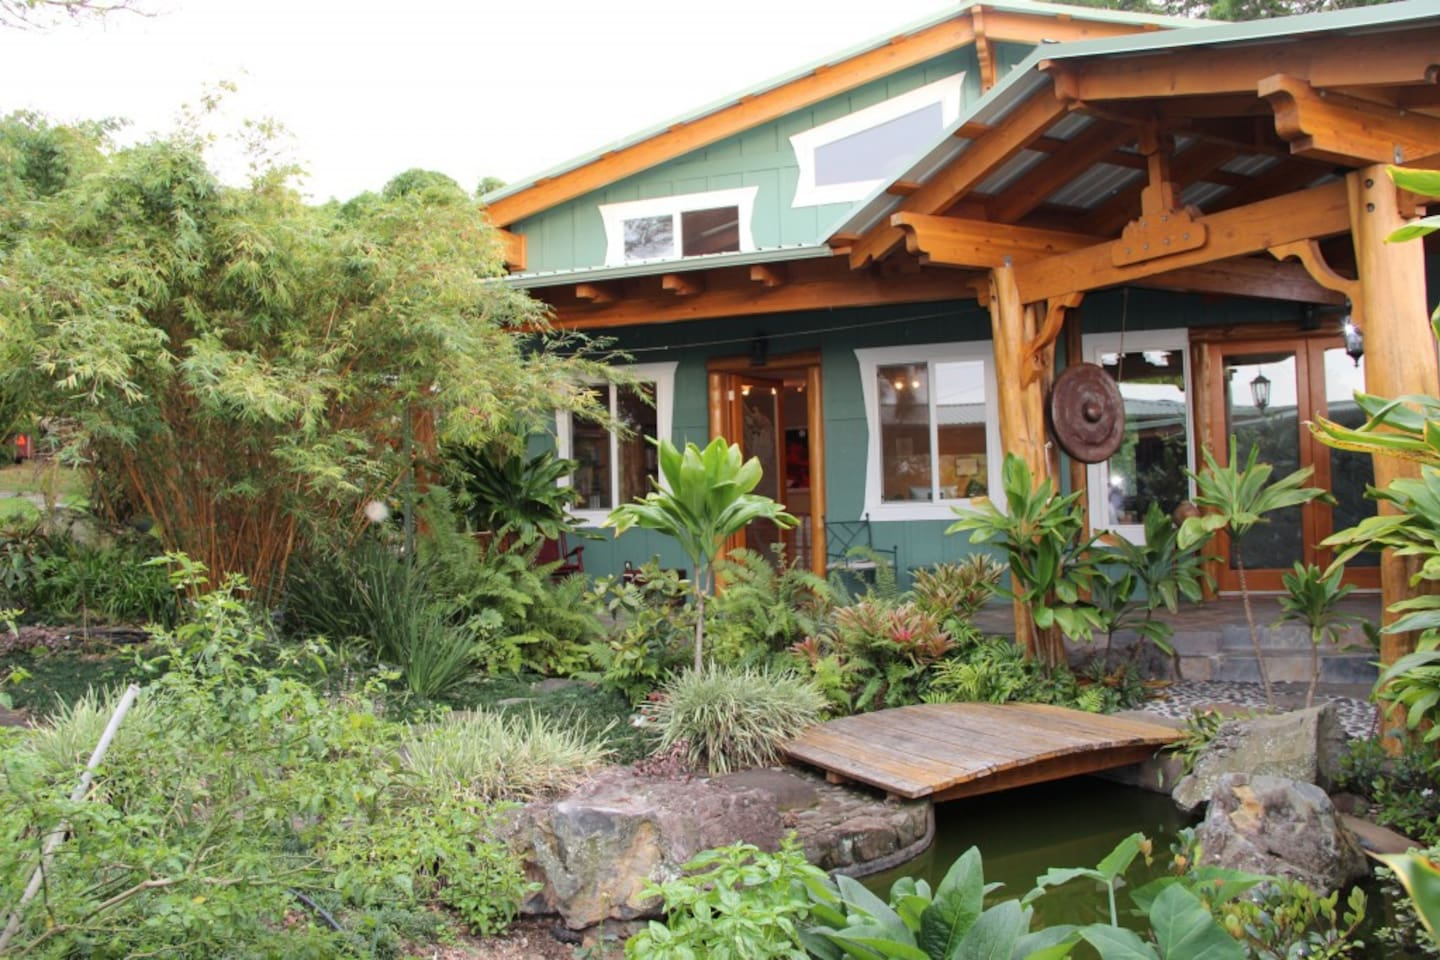 Main House, Guest Suite, Dining Hall, Yoga and Meditation Studio